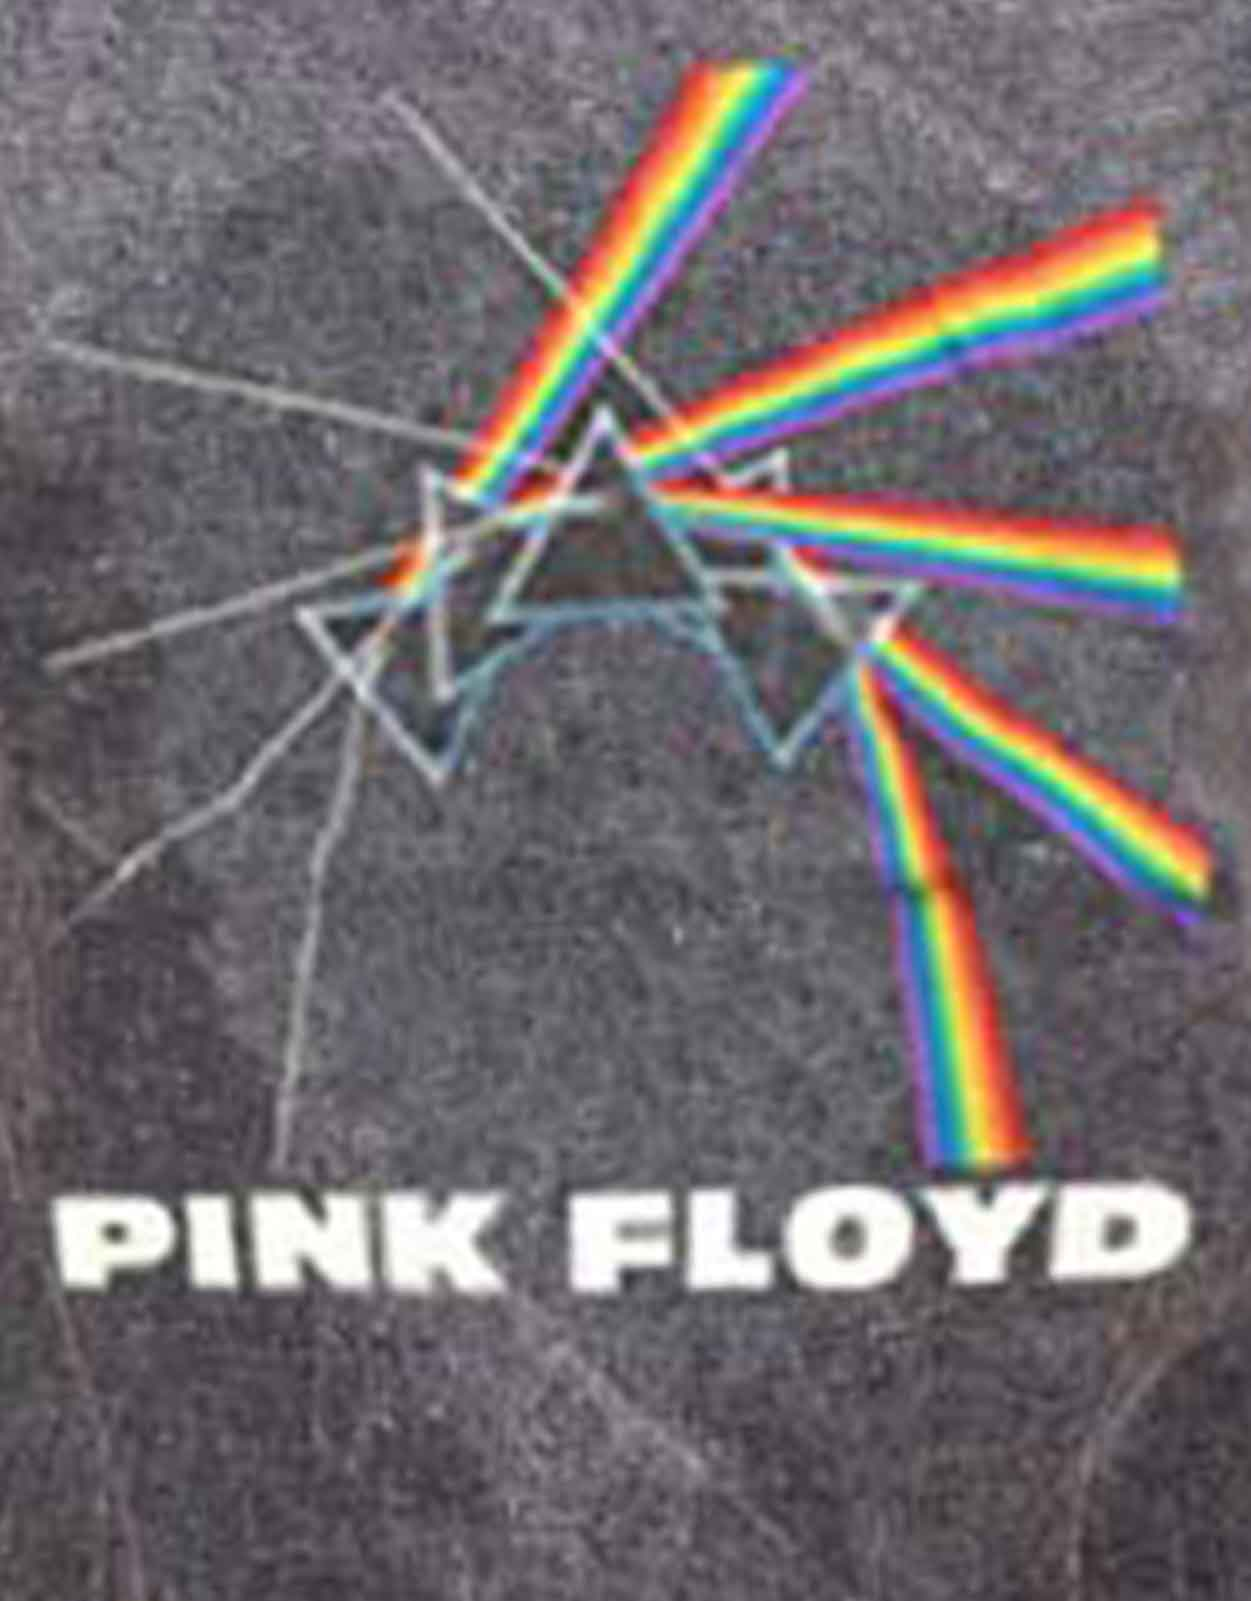 Pink-Floyd-womens-T-Shirt-Dark-Side-of-the-moon-band-logo-official-skinny-fit thumbnail 12